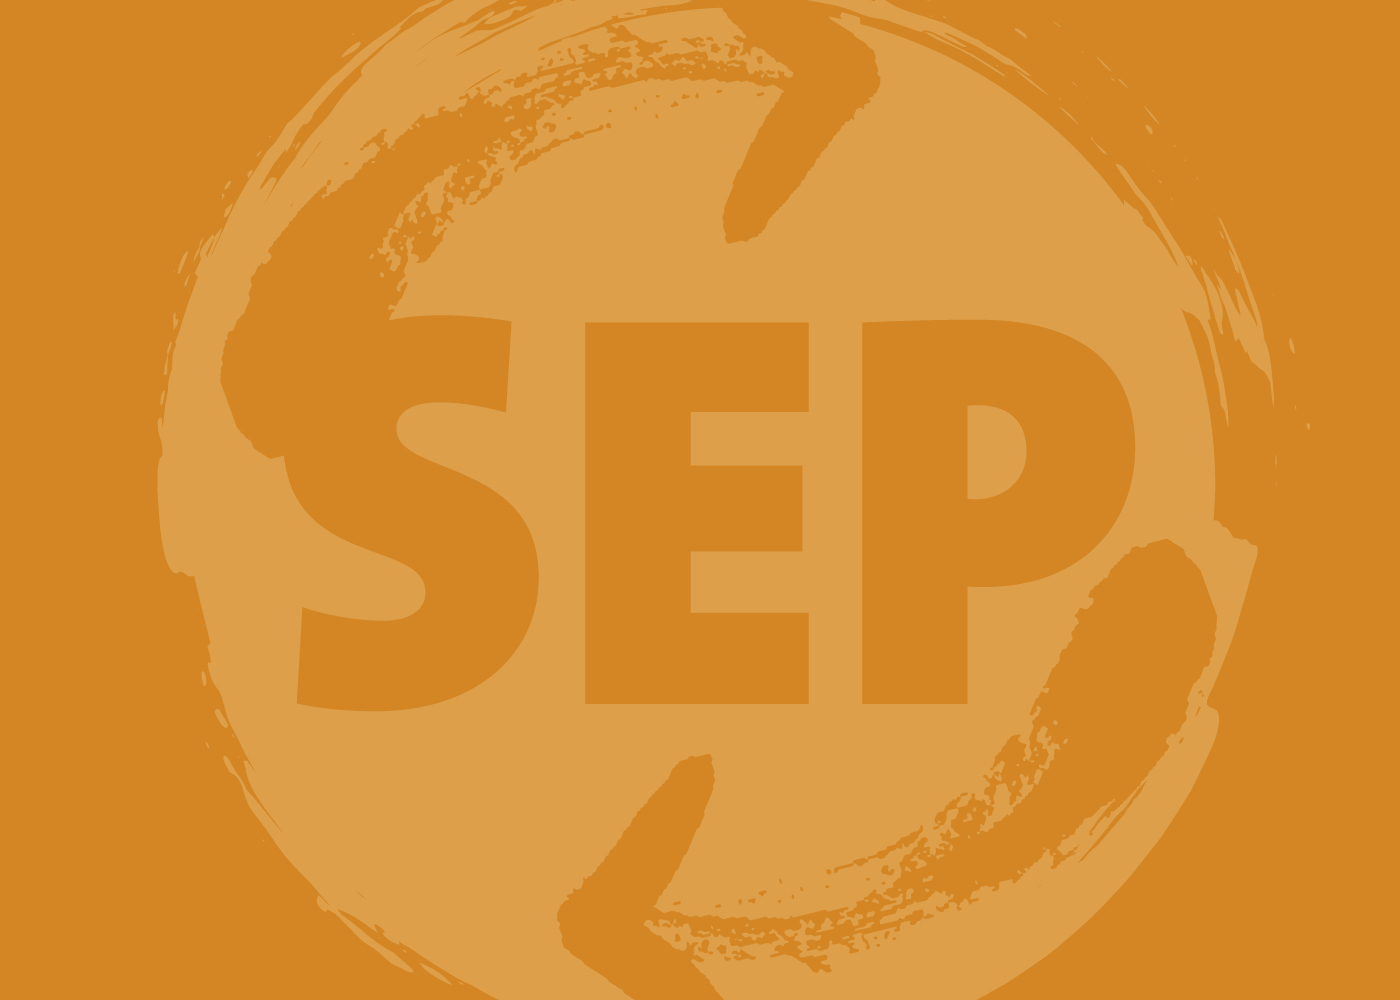 SEP = Sharing Energy